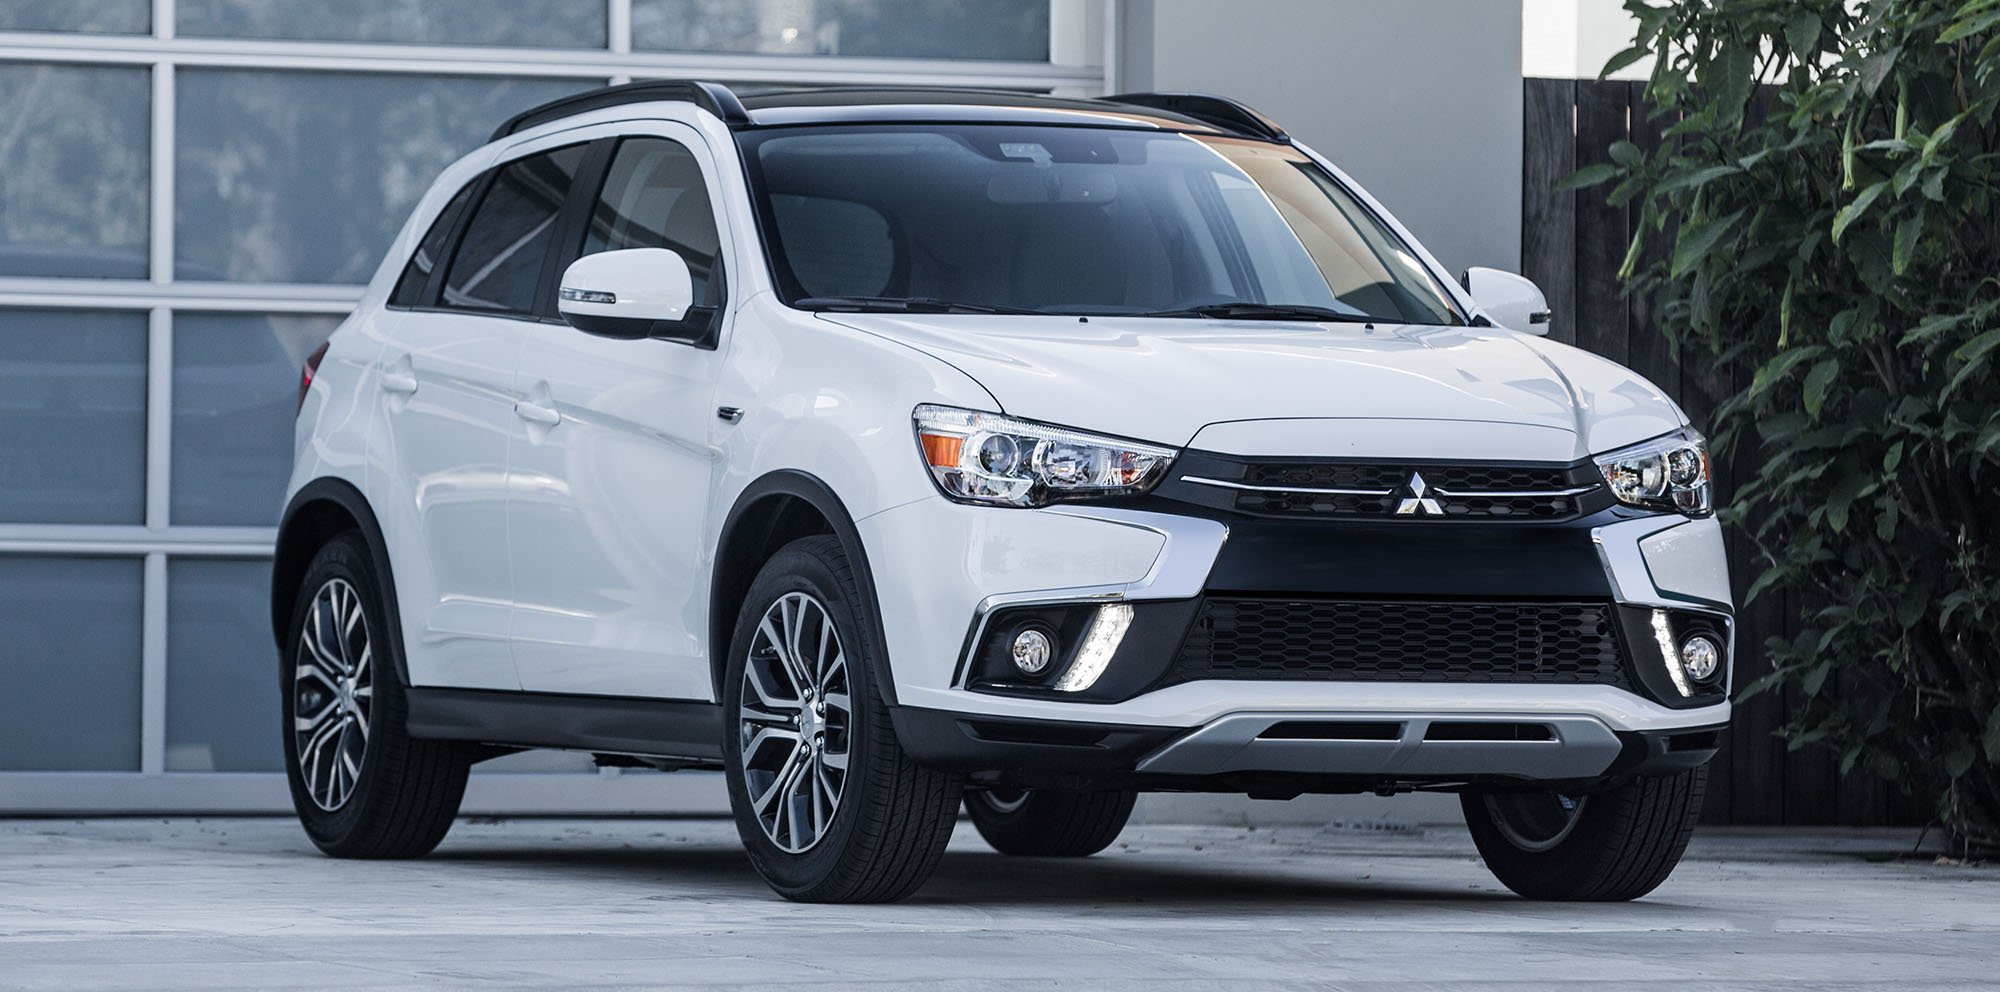 2018 mitsubishi asx update revealed in the usa photos 1 of 4. Black Bedroom Furniture Sets. Home Design Ideas